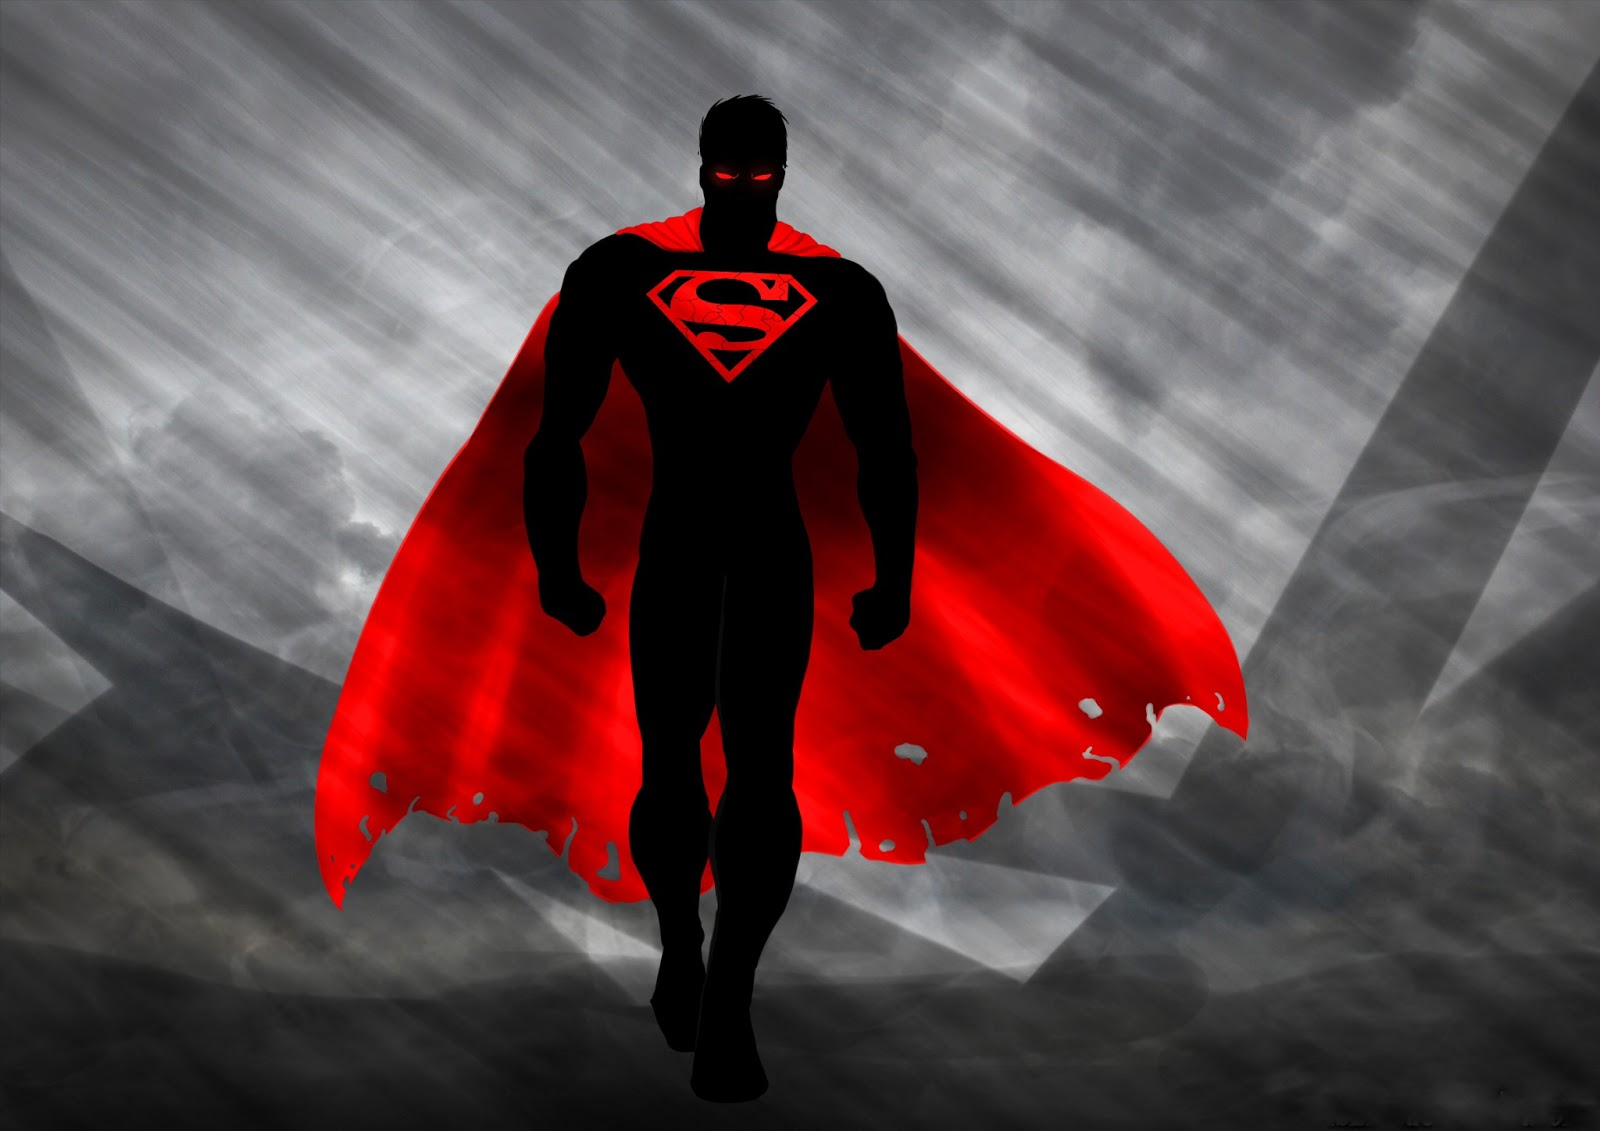 HD Wallpapers Superman hd wallpaper 1920x1080 1600x1131